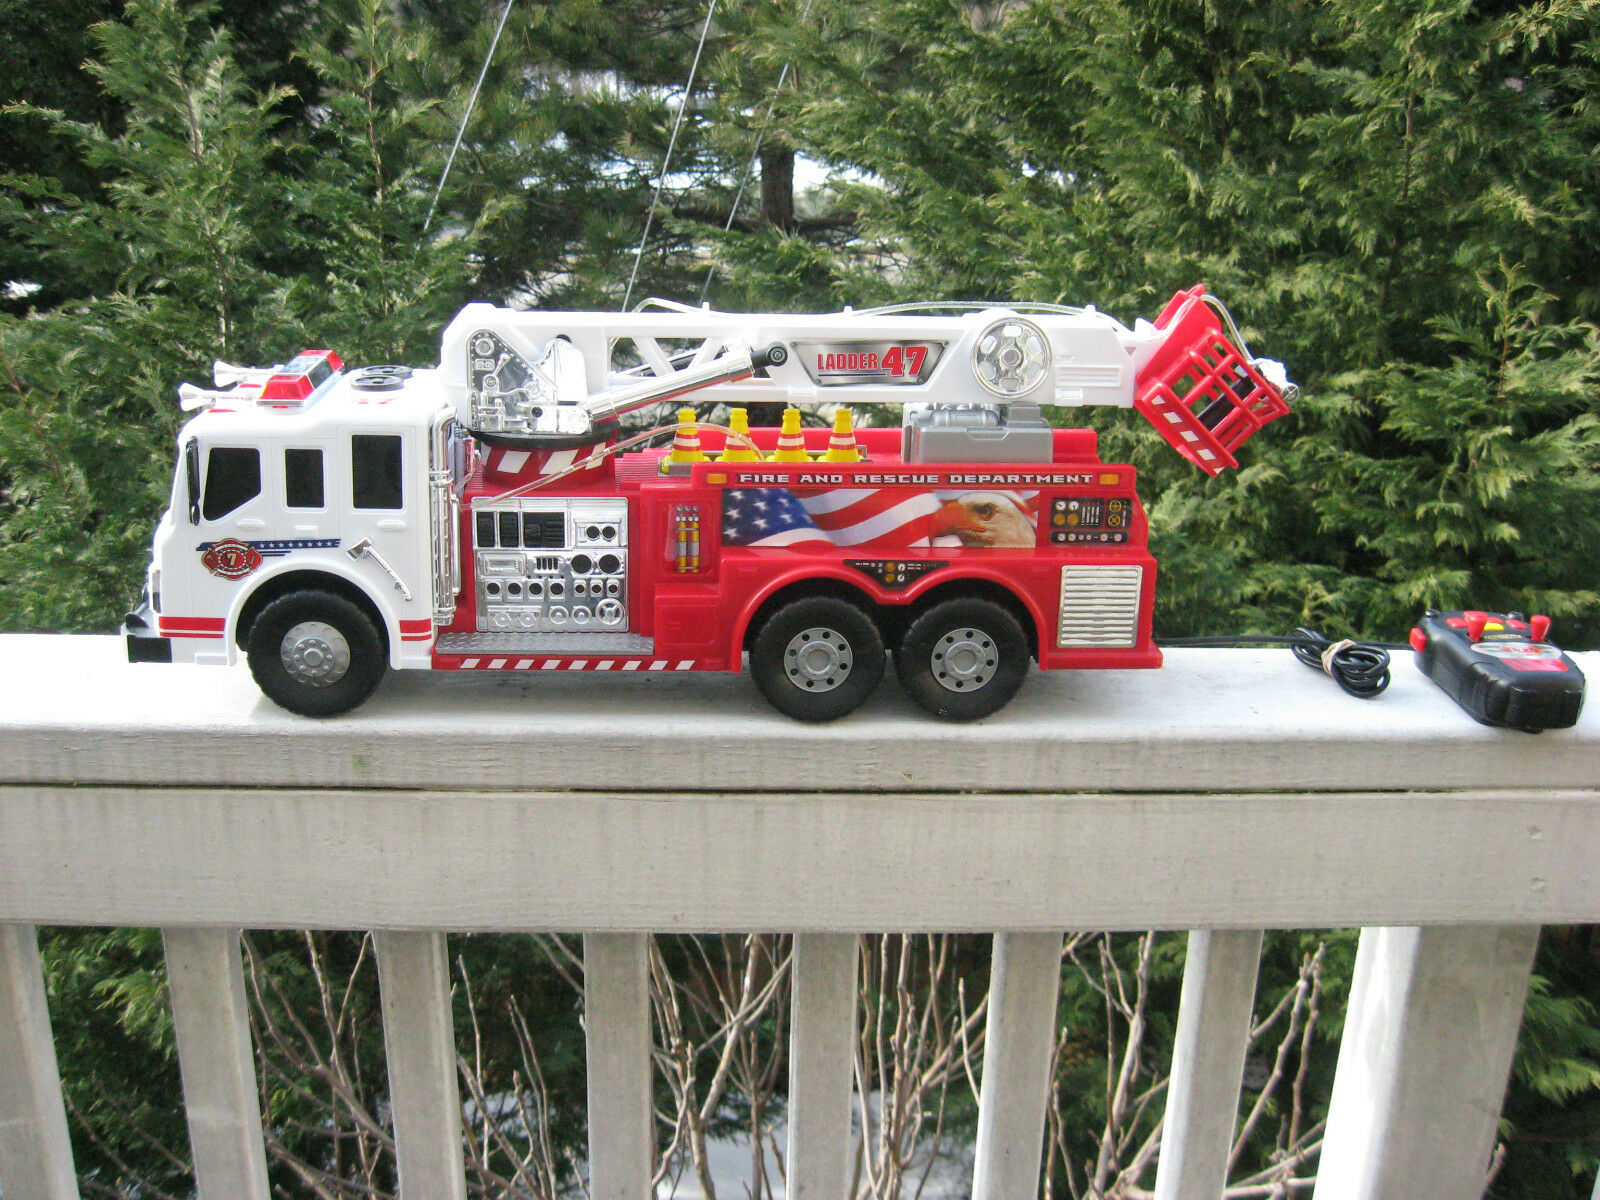 Fast Lane 22 1 2   Remote Controlled Fire And Rescue Department Fire Truck